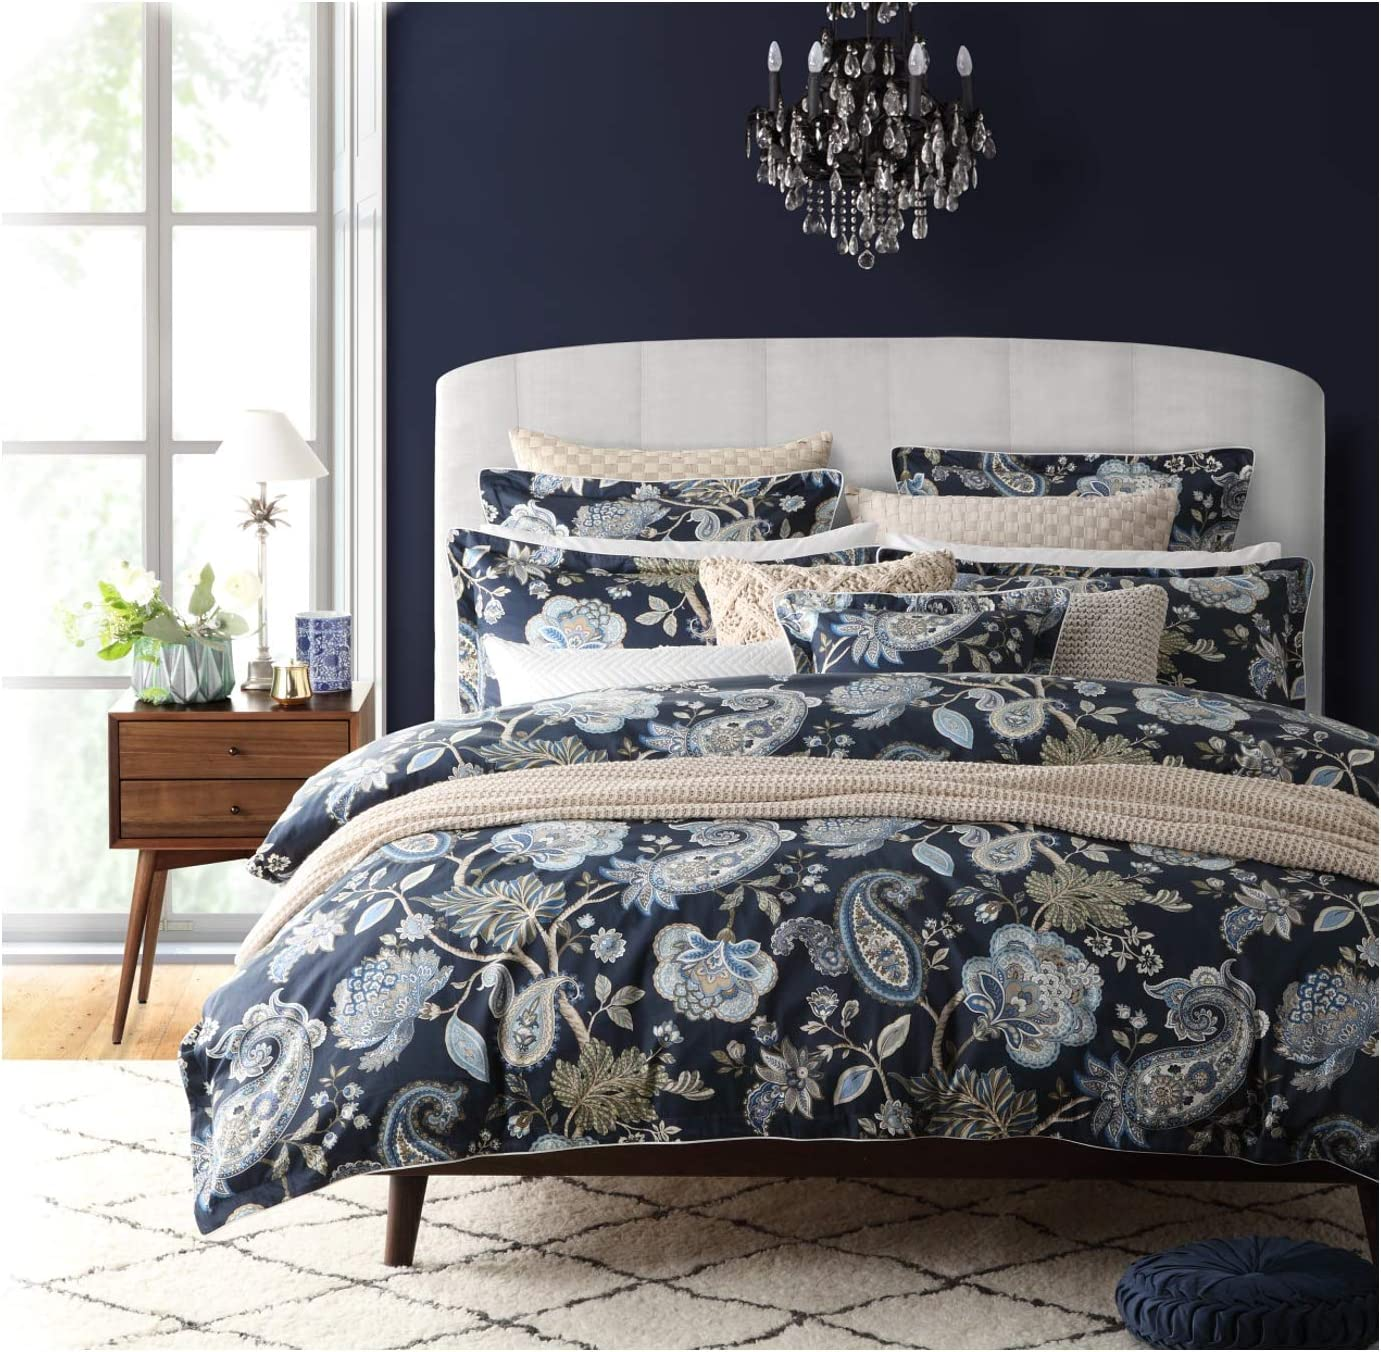 Nicole Miller Bedding 3 Piece Cotton Full / Queen Duvet Cover Set Jacobean Floral Paisley Vines Pattern in Shades of Blue, Brown and Beige on a Midnight Blue Background